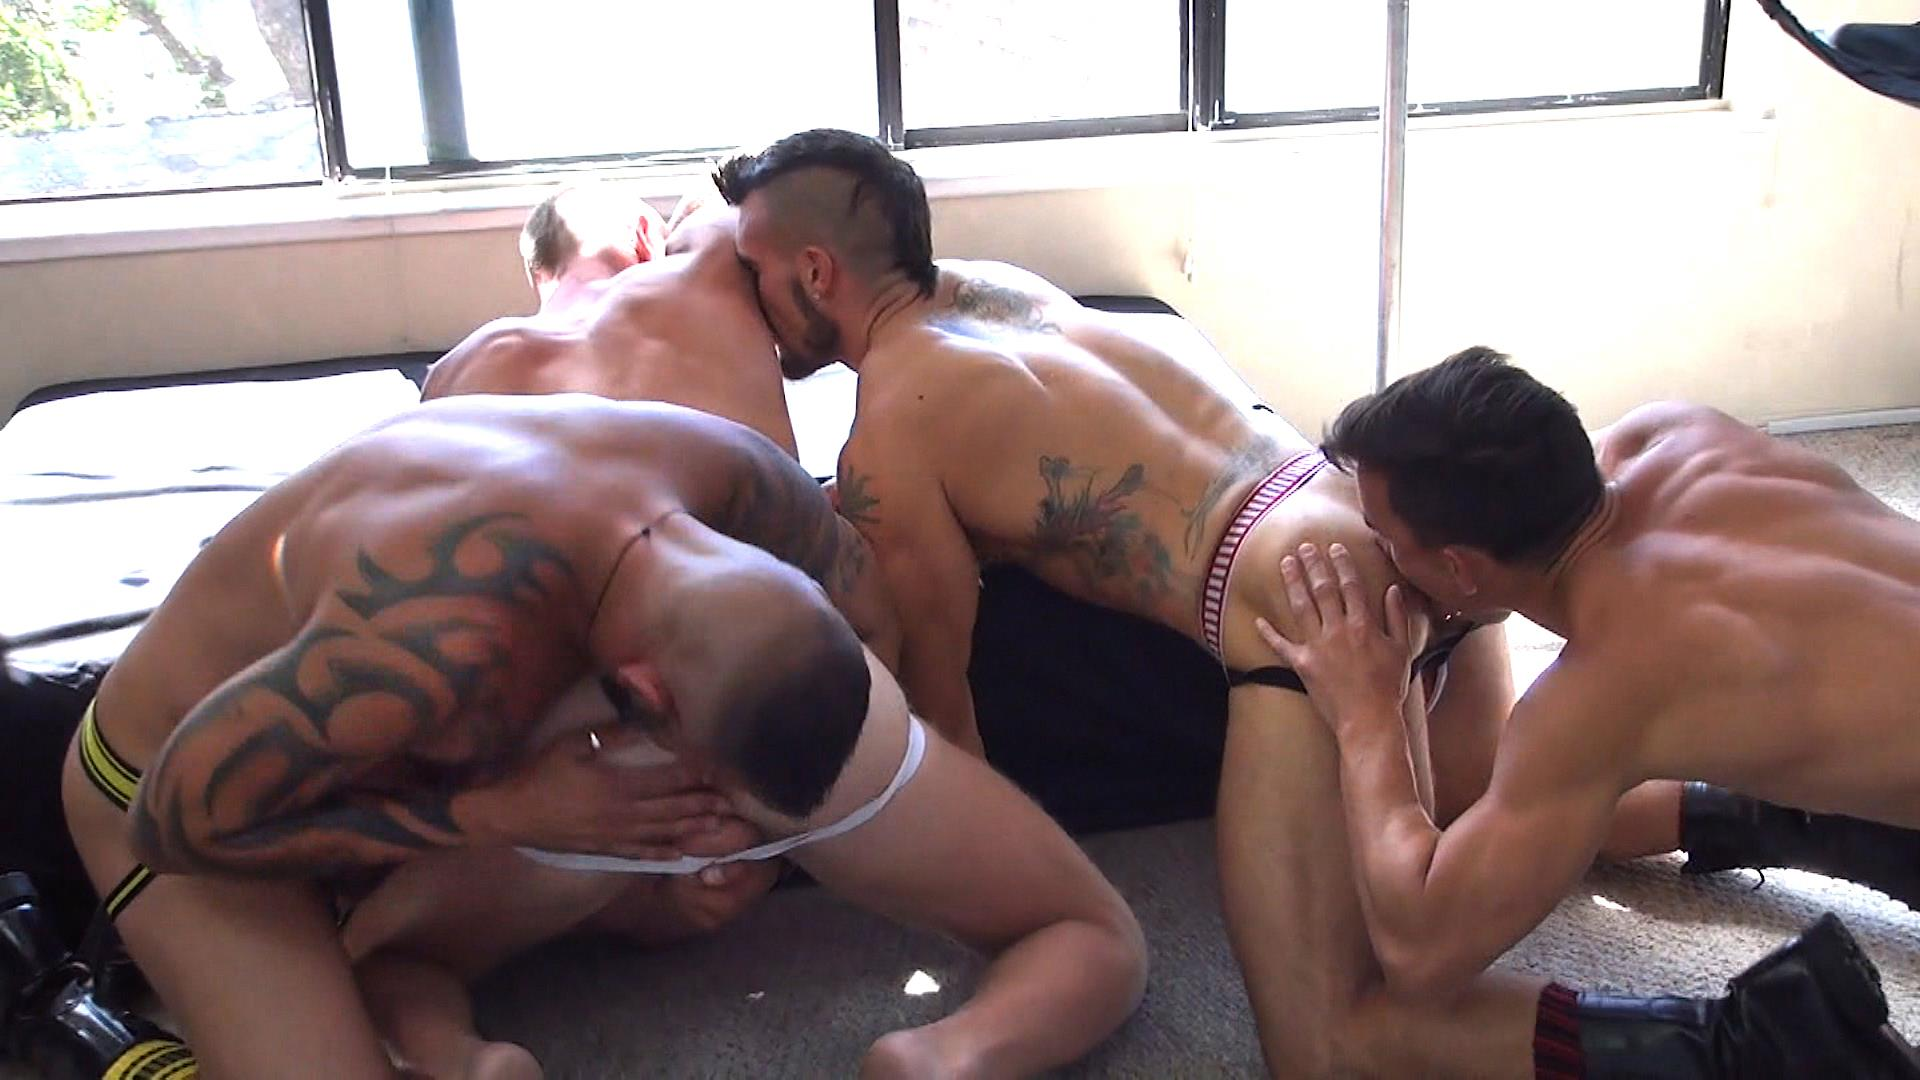 Raw Fuck Club Derrick Hanson and Aarin Asker and Billy Warren and Adam Avery Amateur Gay Porn 10 Group Sex Bareback Fucking At The Folsom Street Fair 2015